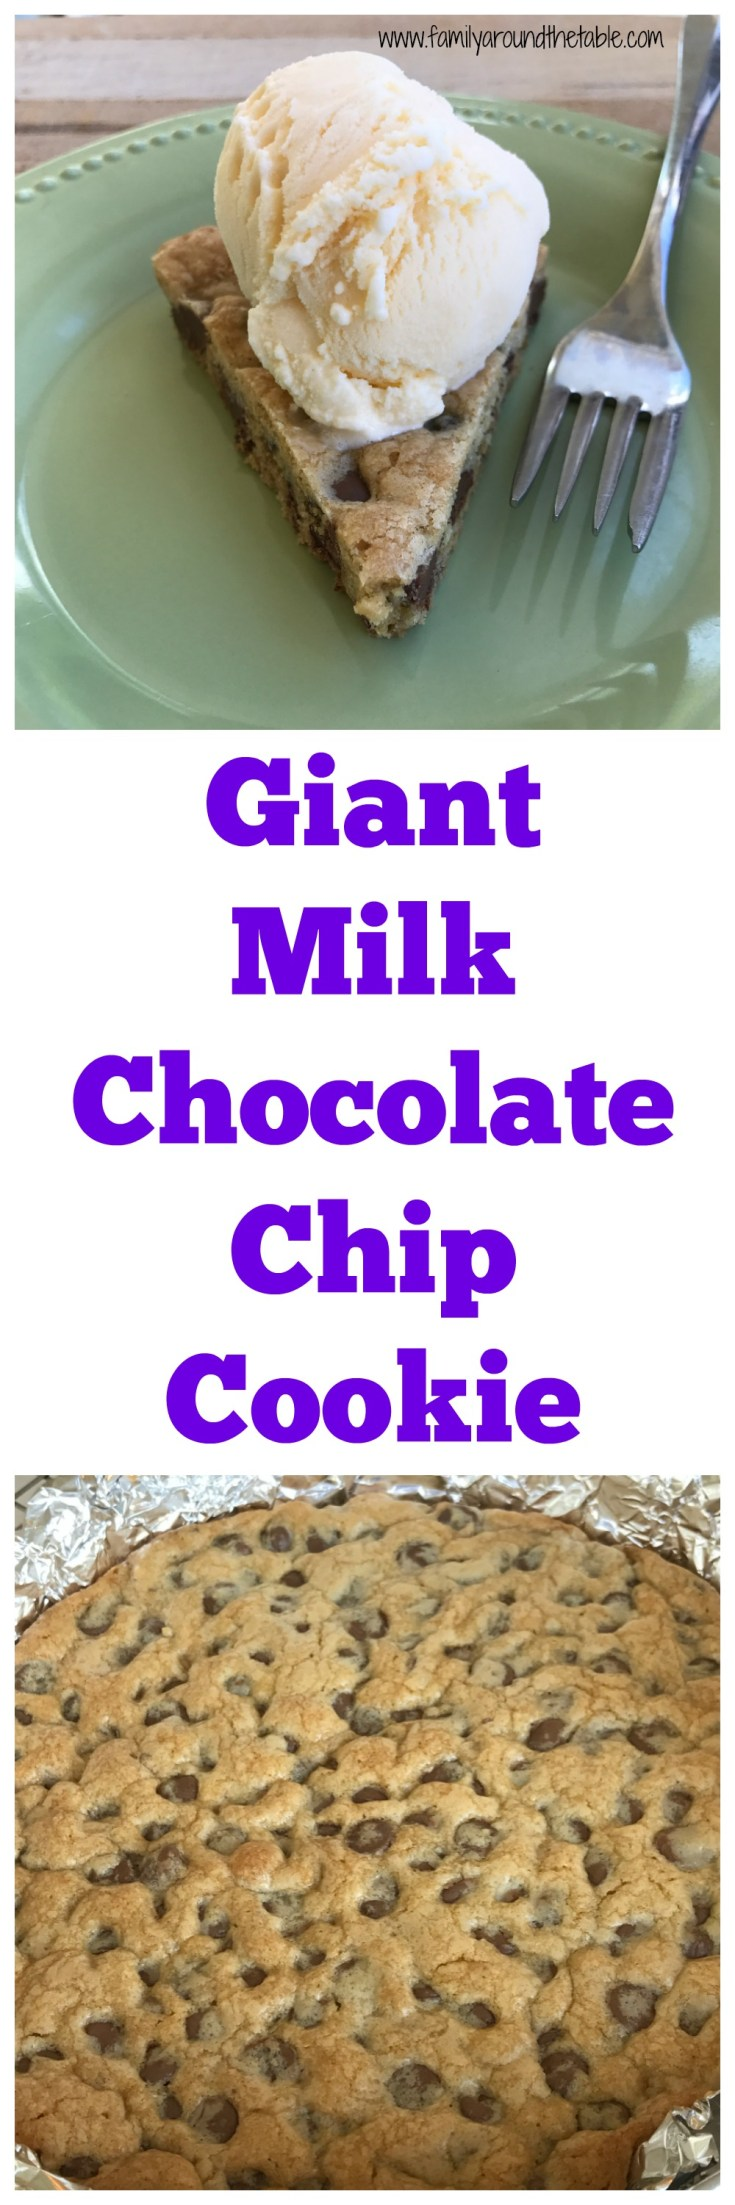 A giant milk chocolate chip cookie is sure to be a hit.